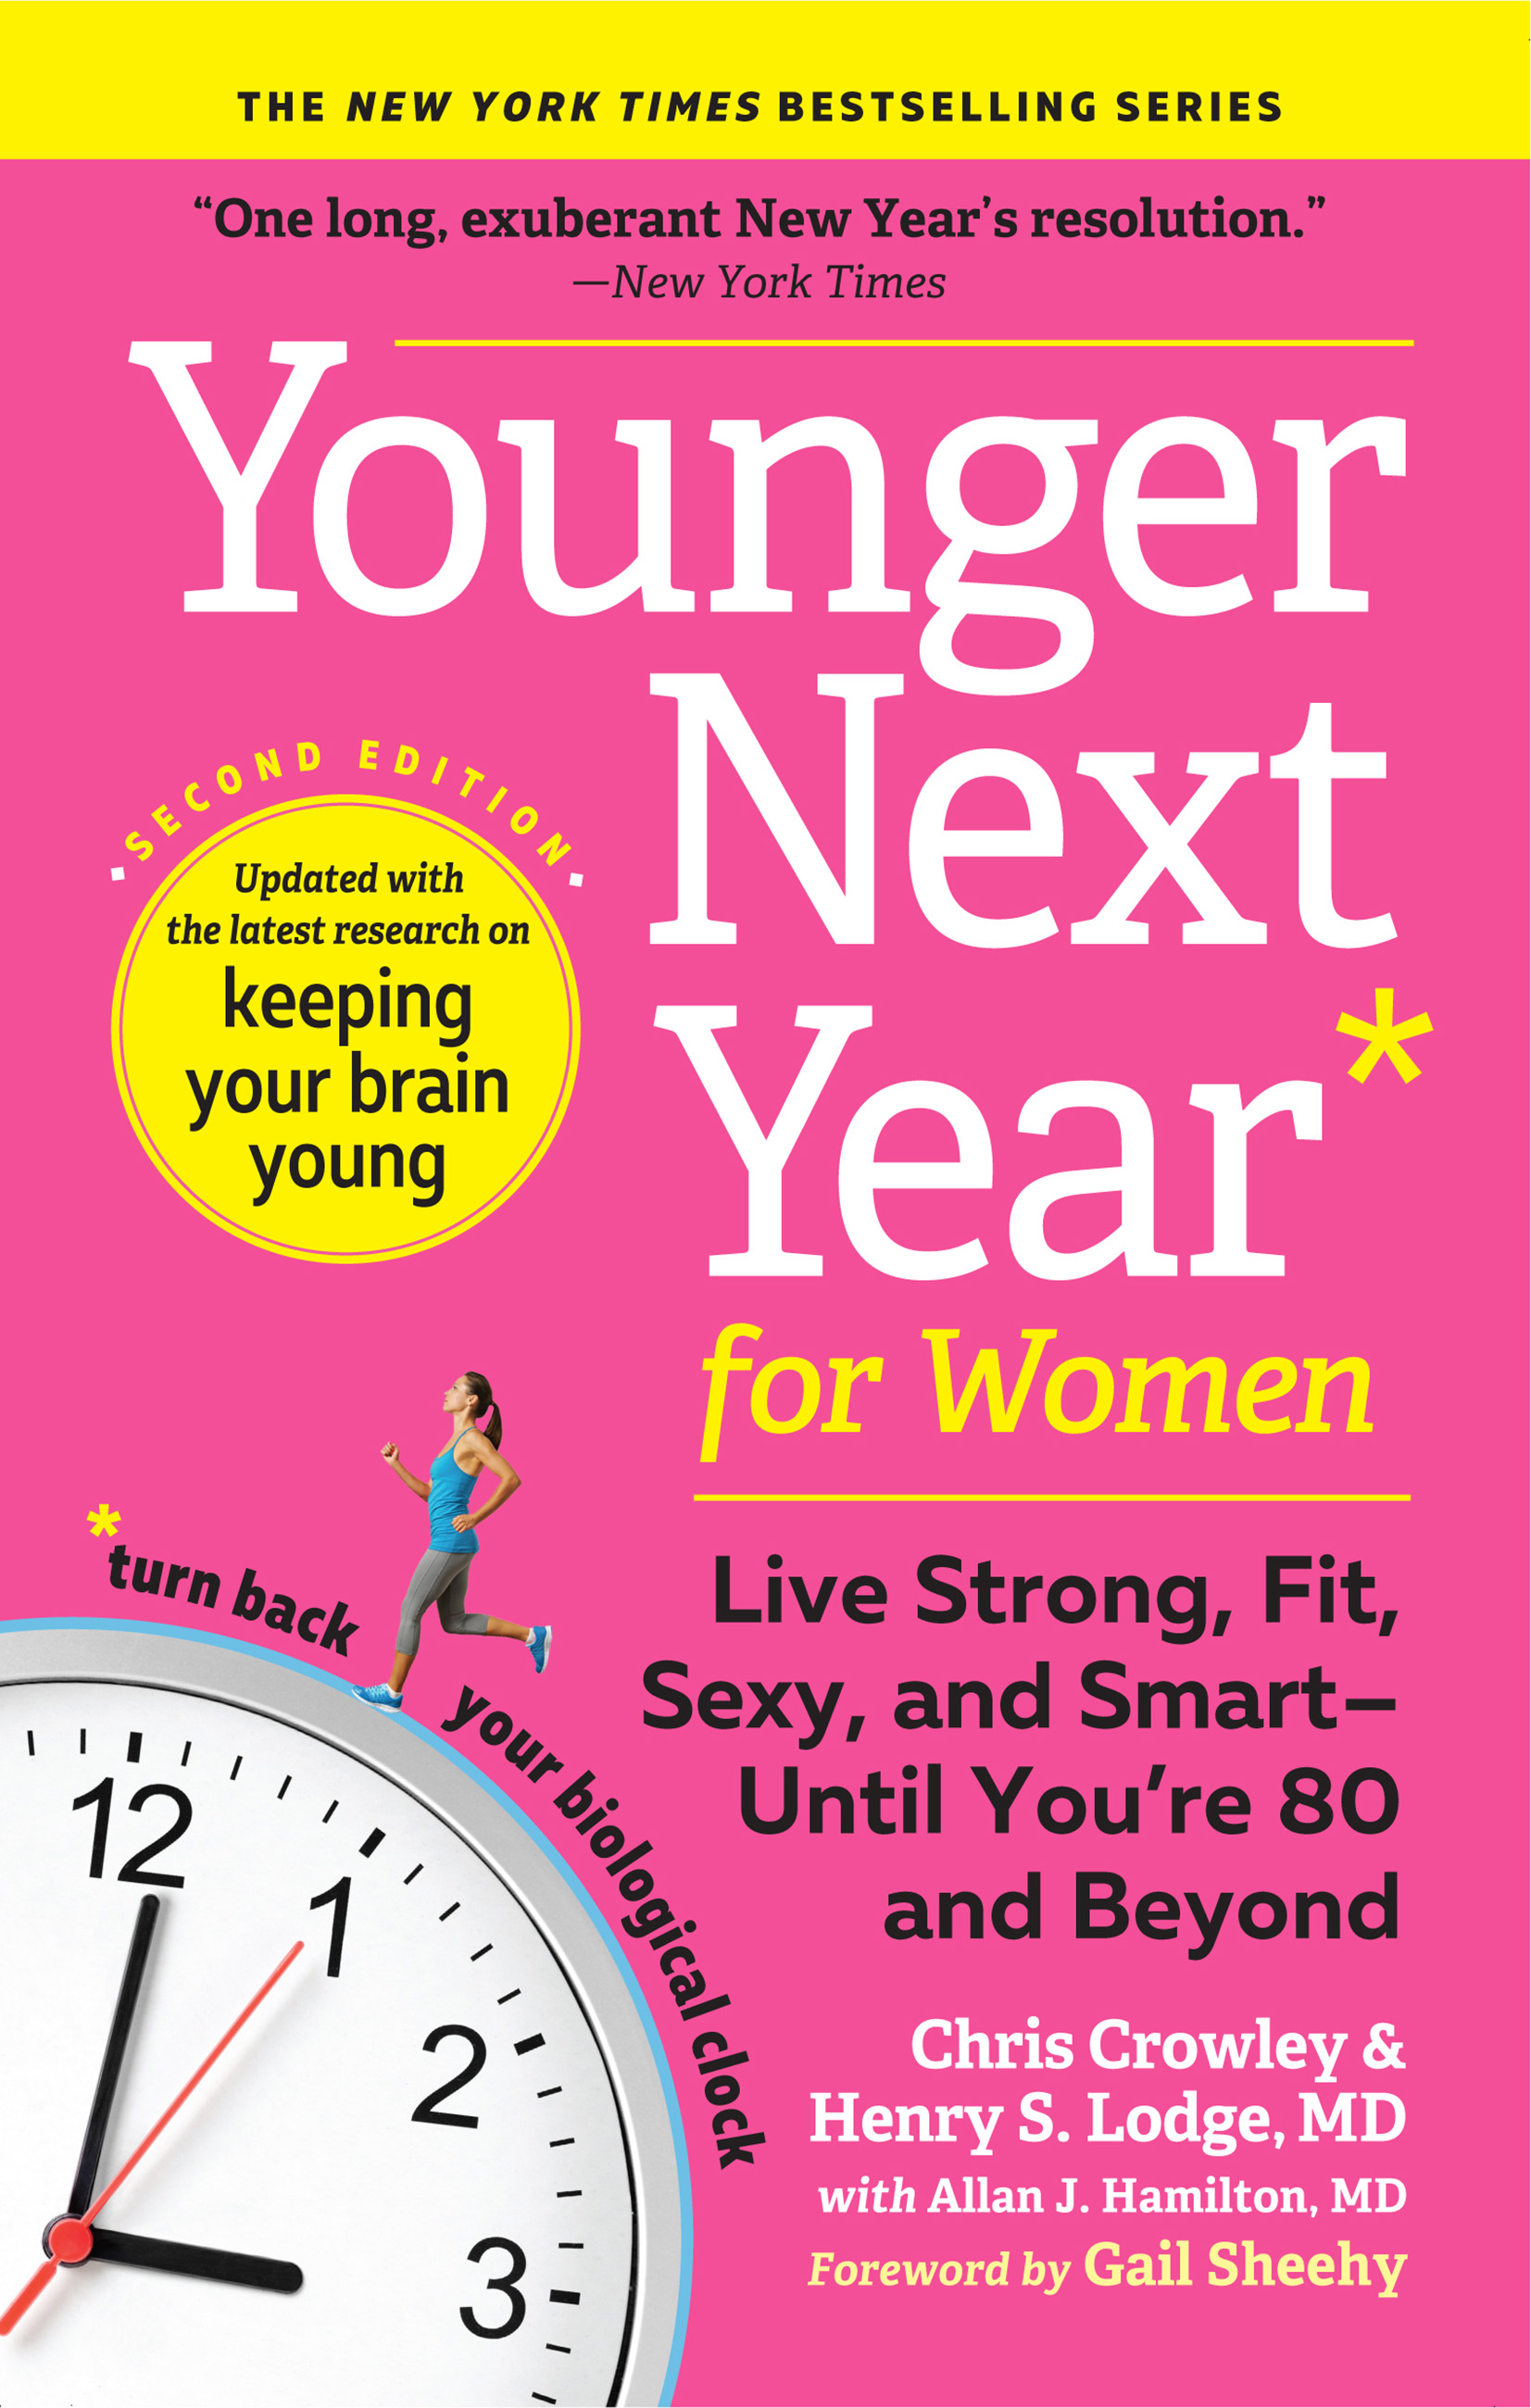 Younger next year for women live strong, fit, and sexy -- until you're 80 and beyond cover image